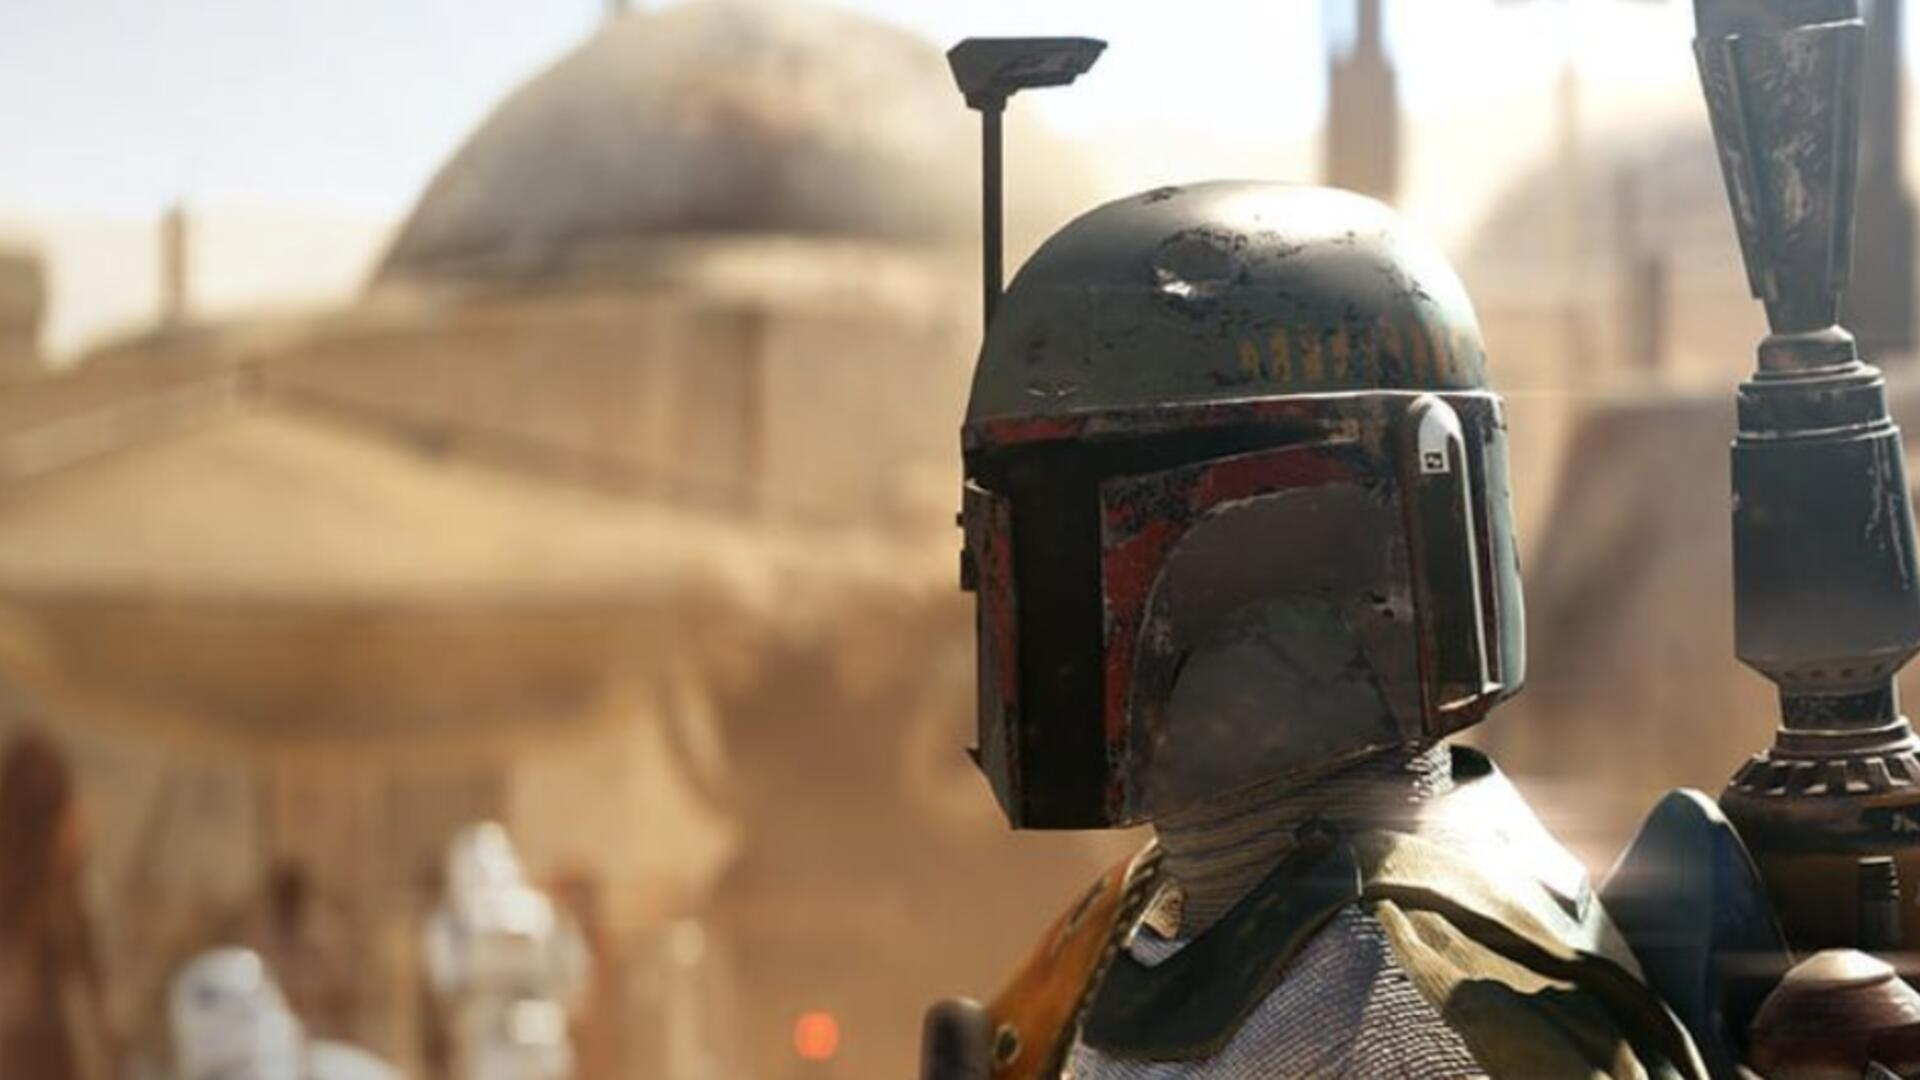 A Timeline of EA's Struggles With Its Exclusive Star Wars License